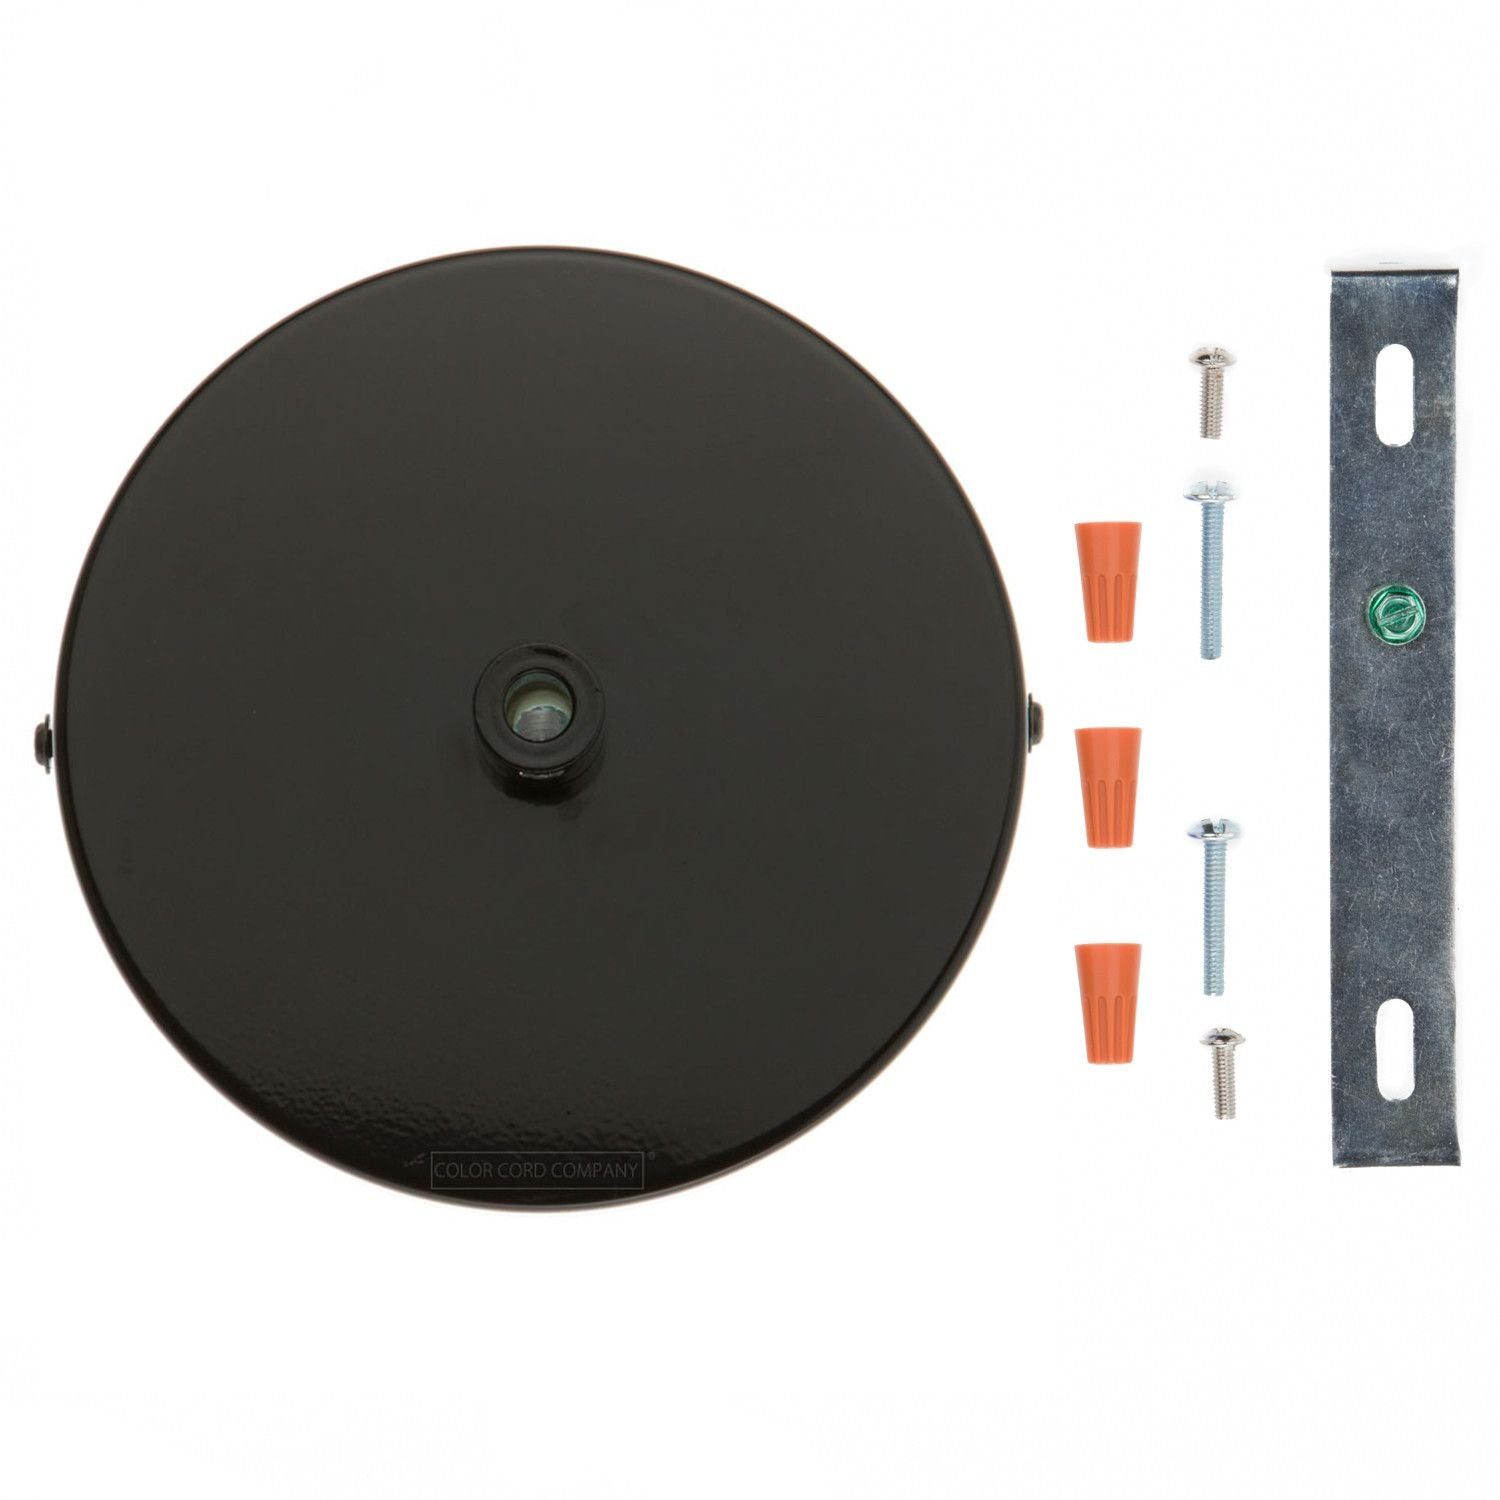 Single Port Ceiling Canopy  sc 1 st  Color Cord & Ceiling Canopy u0026 Conversion Kit - Single Port | Color Cord Company